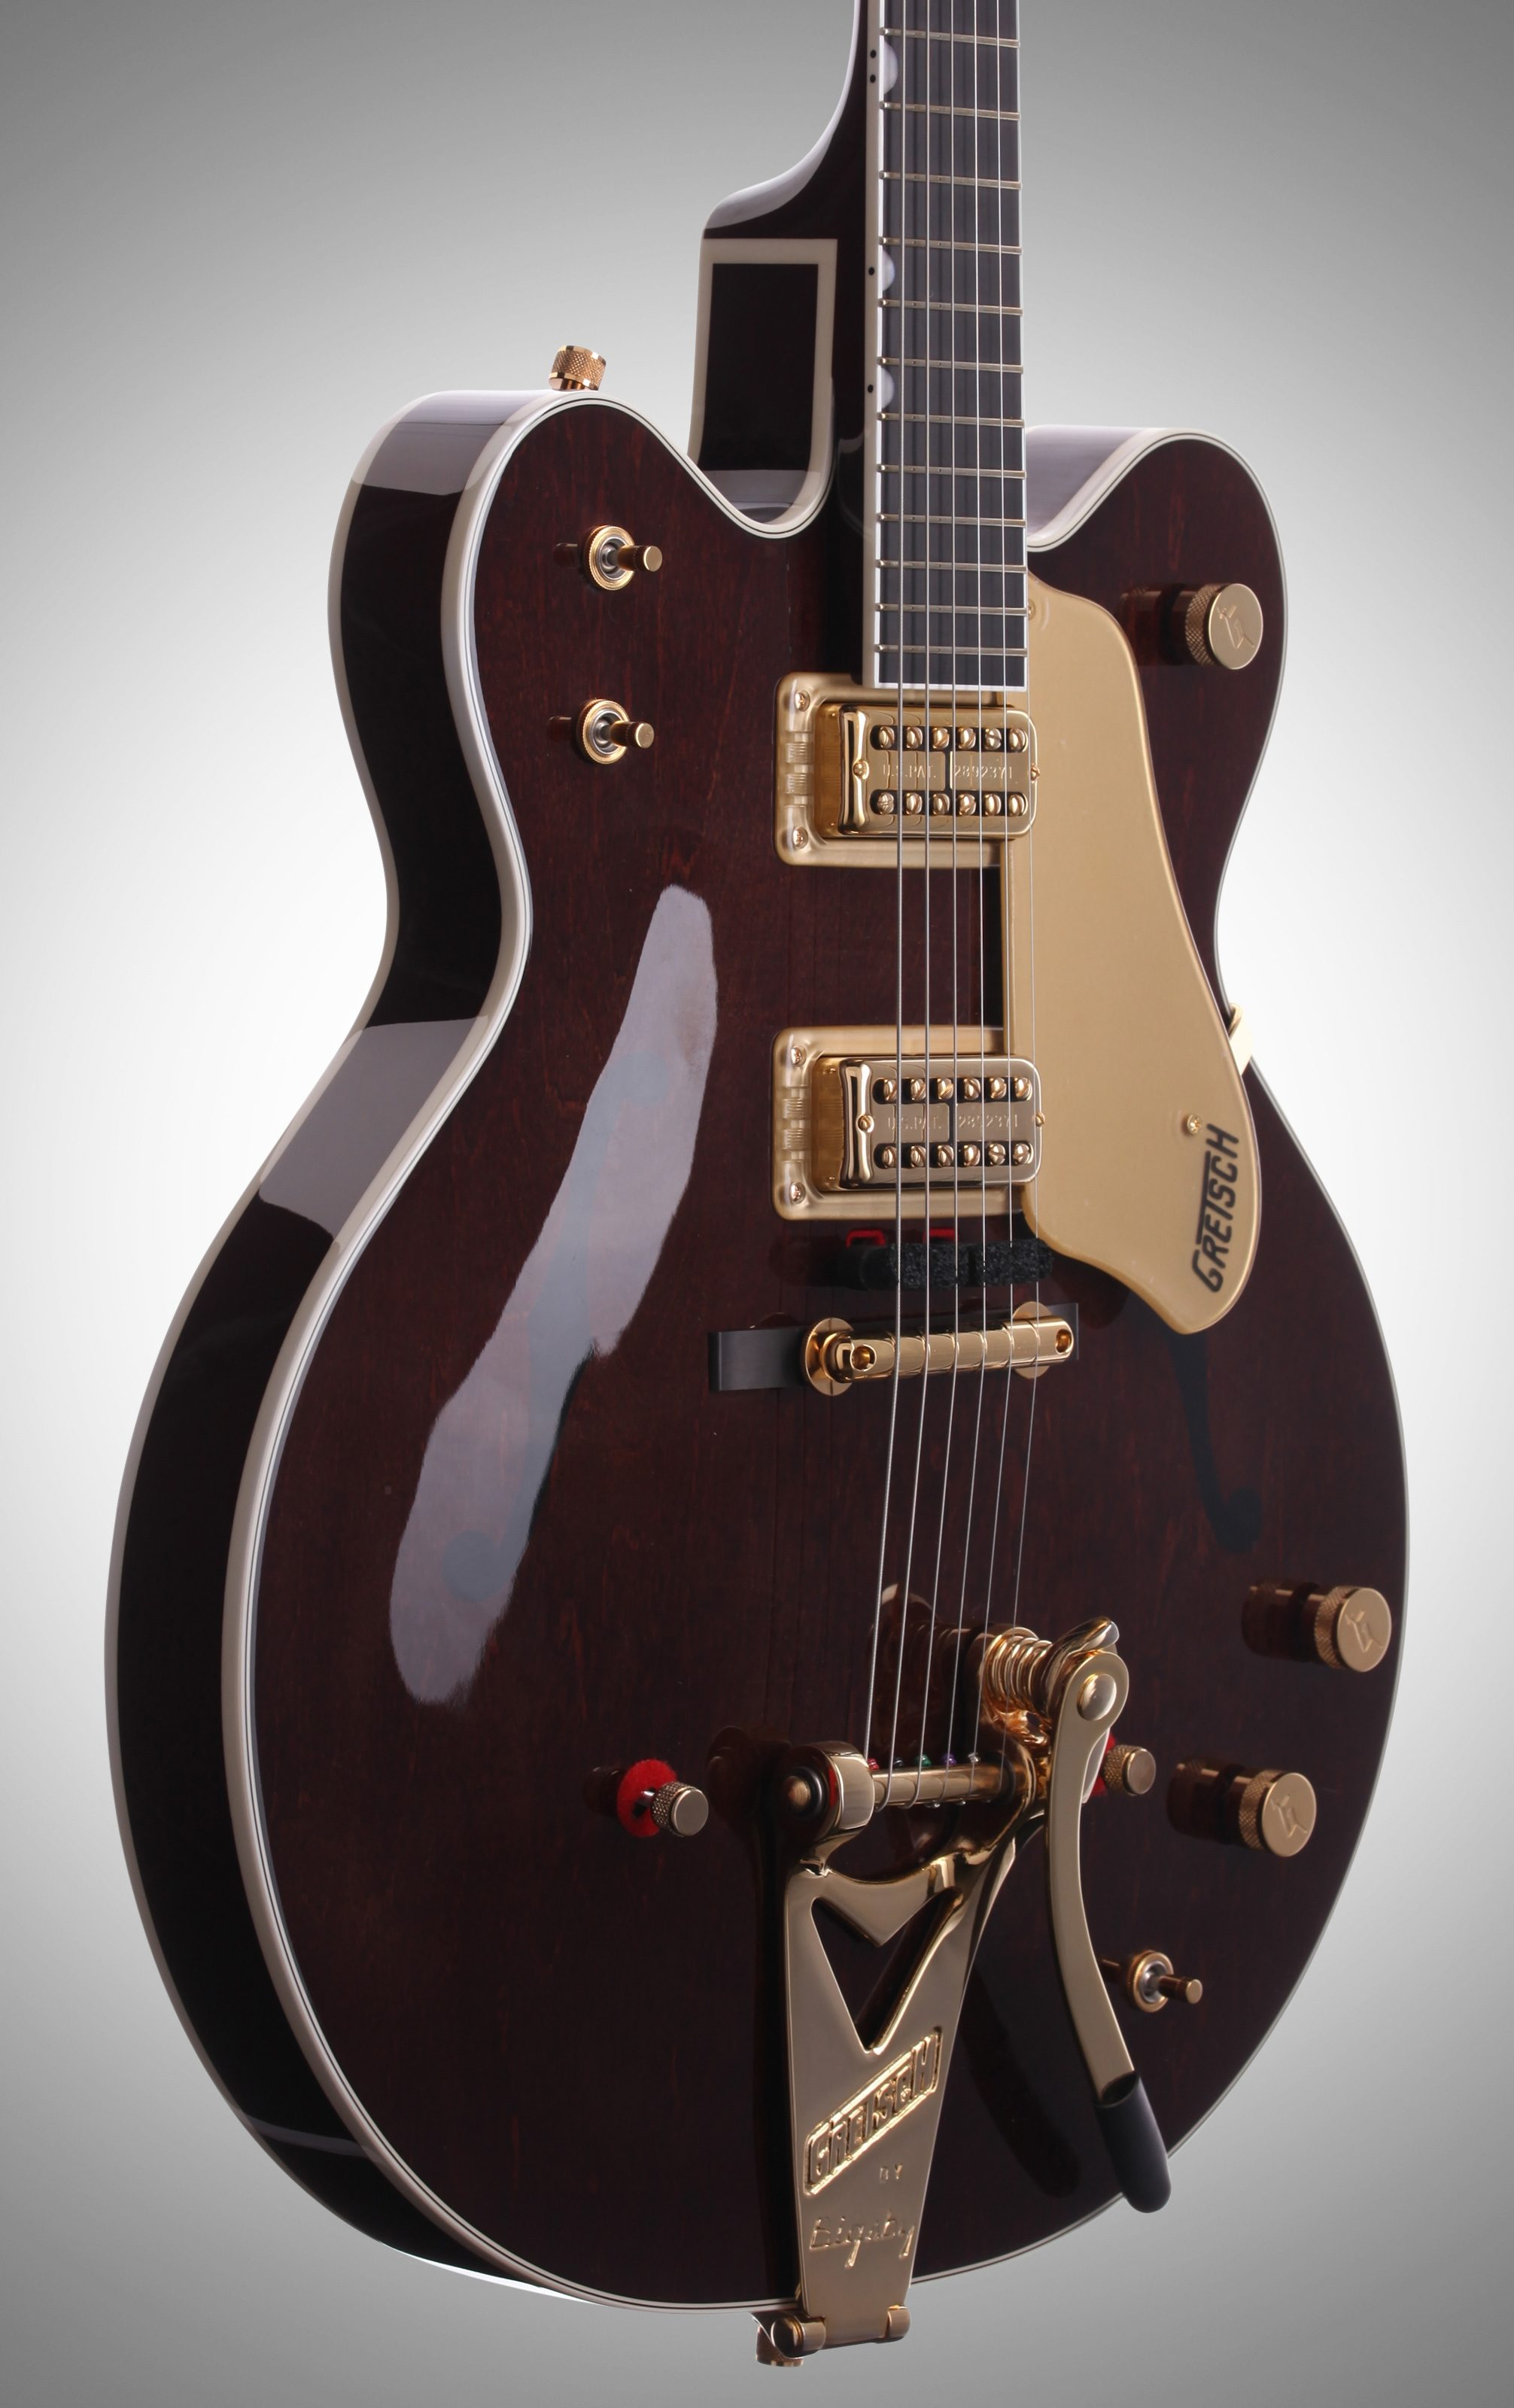 gretsch g5122 review must read review